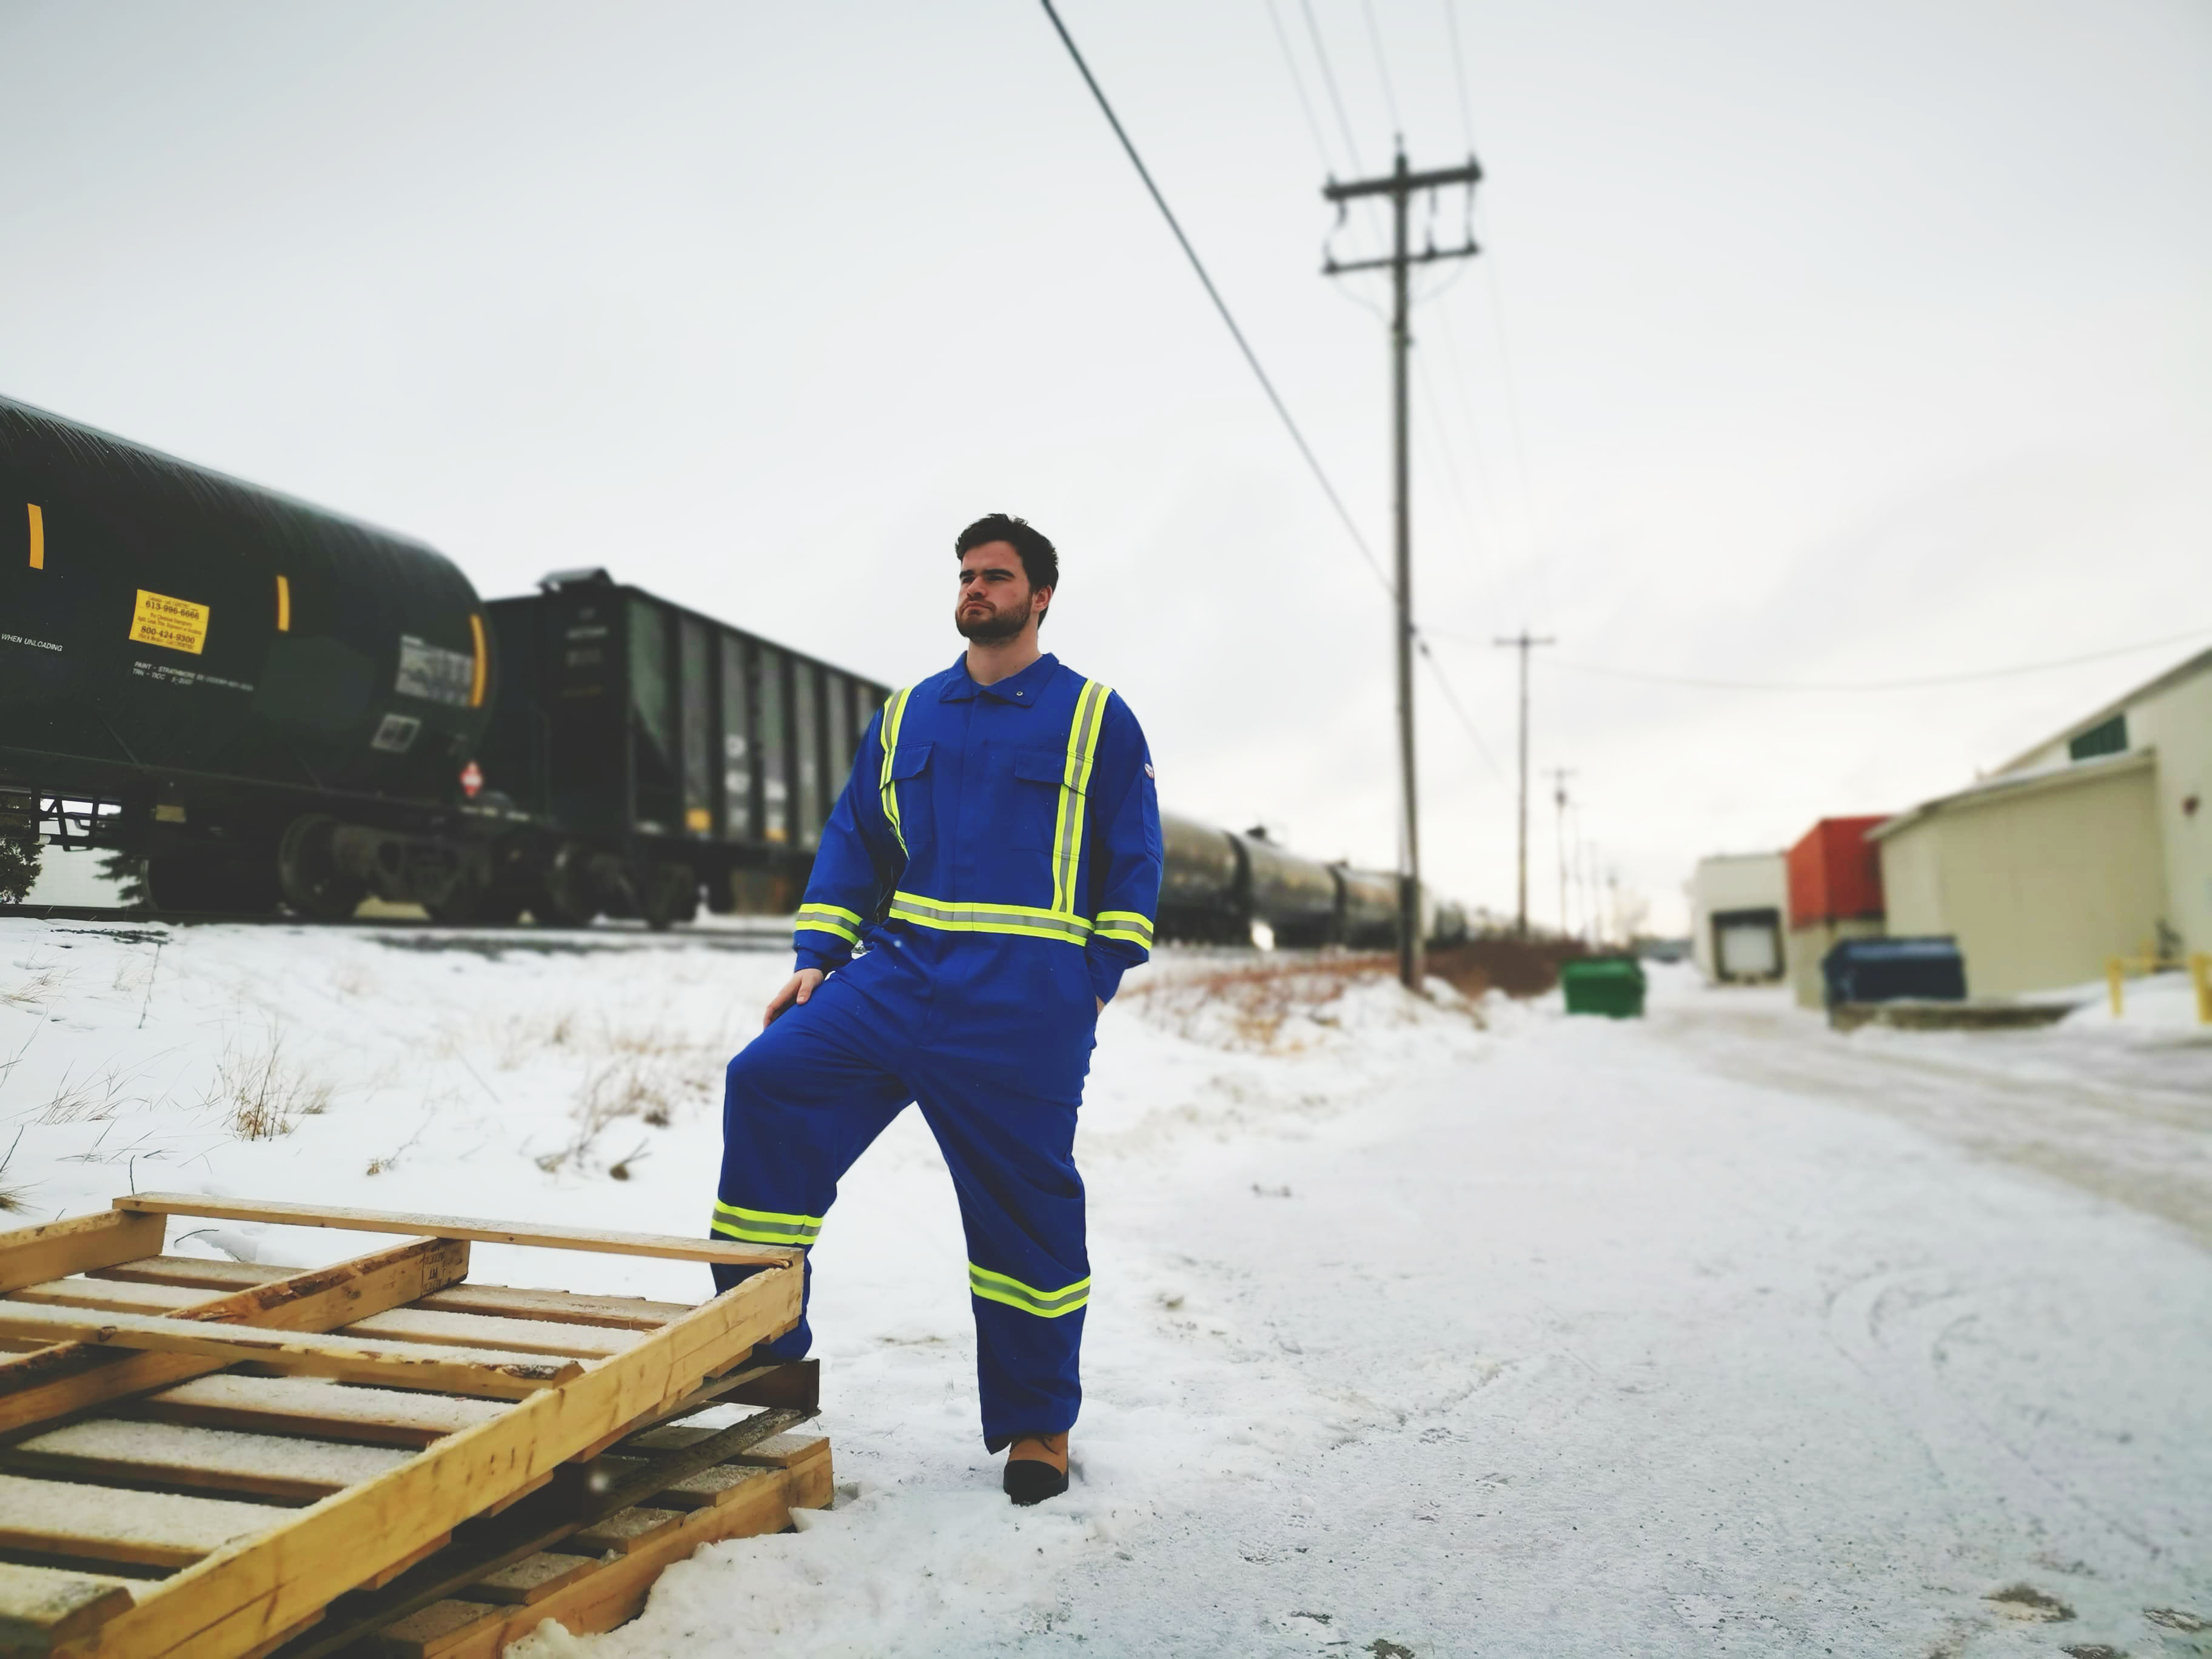 Man in royal blue hi viz striped coveralls stands near a rail yard